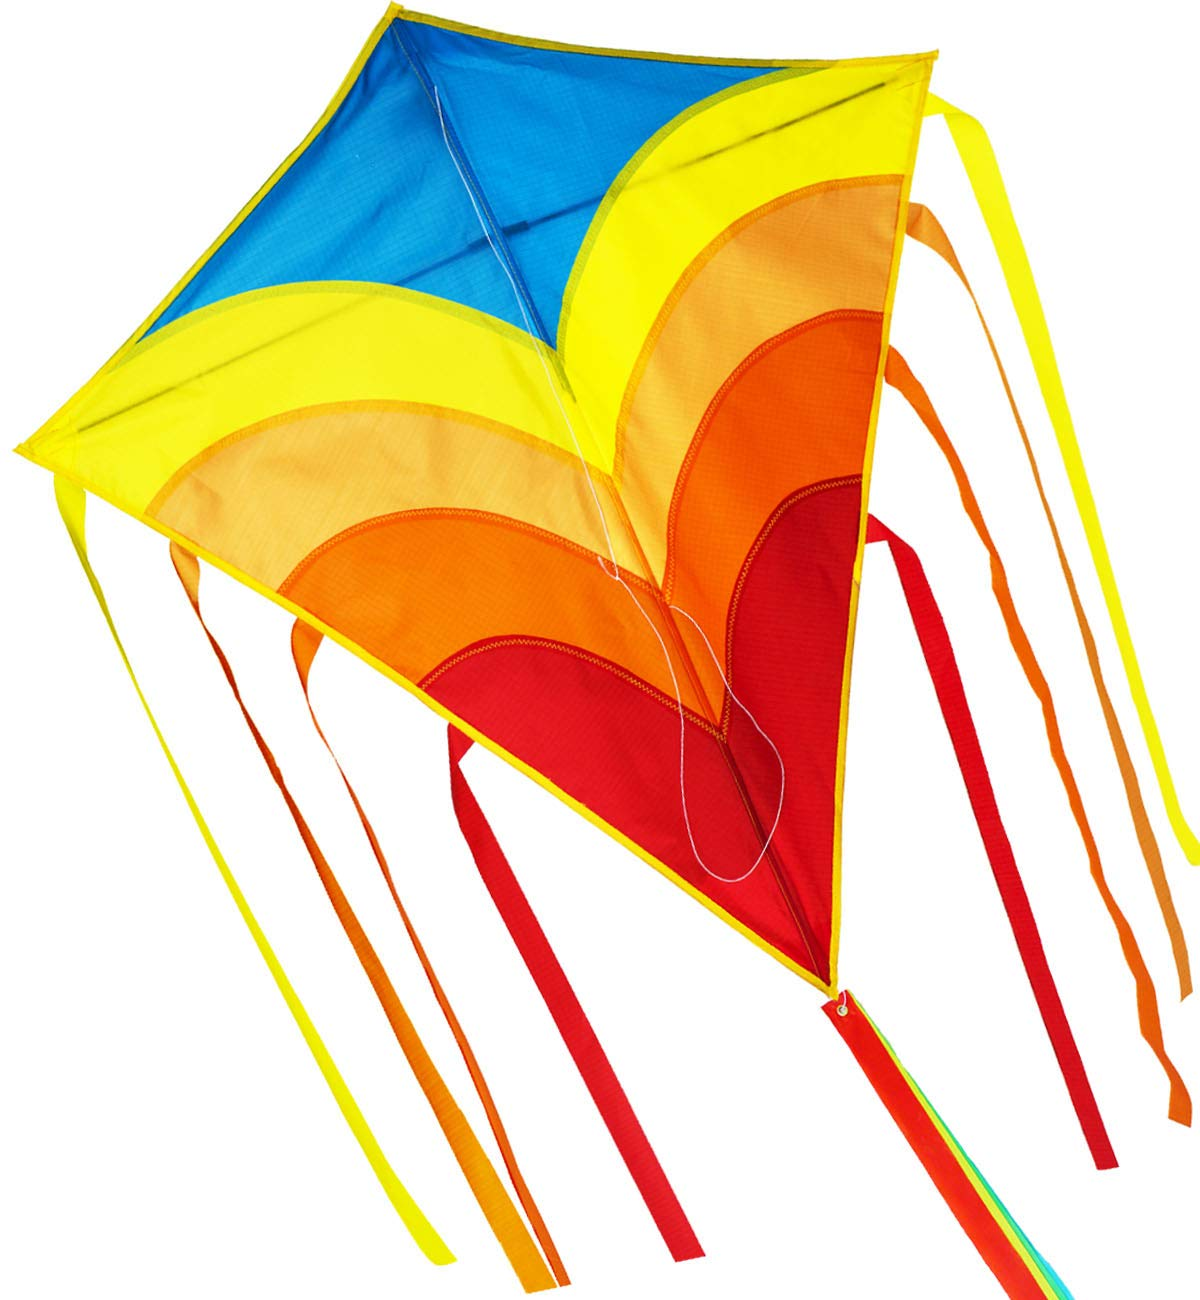 ZHONGRAN Rainbow Kite/Diamond Kite Easy Flyer and Assemble Strong Pull Handle and Line Single Line and Long Tail Ribbons The Best Kite for The Beach Toy for Kids and Adults